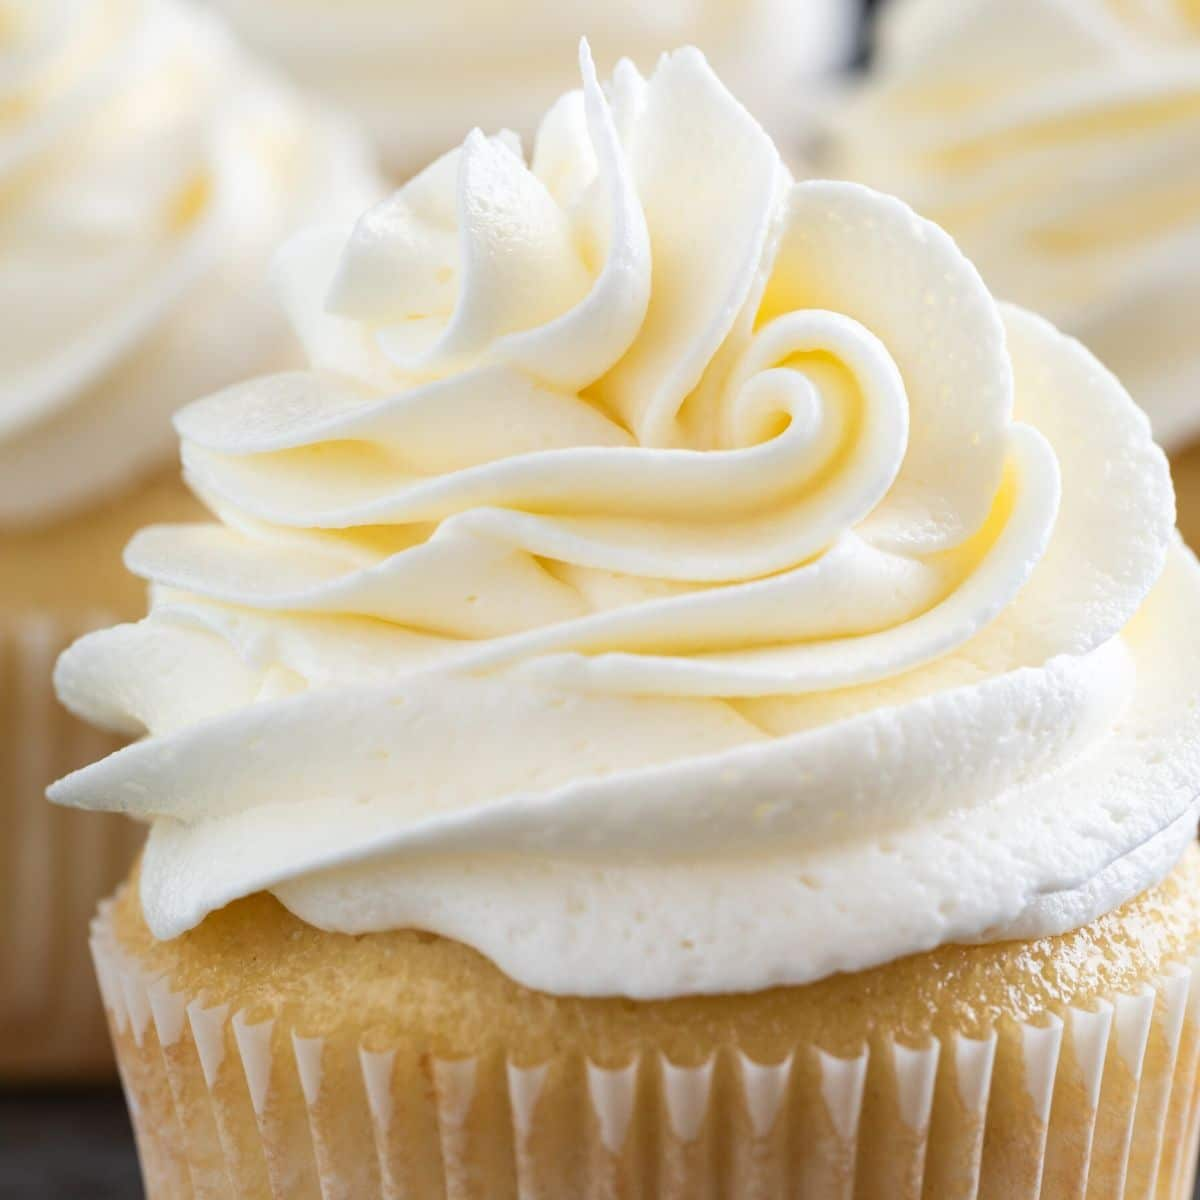 Swirl of Vanilla Buttercream Frosting on a yellow cupcake